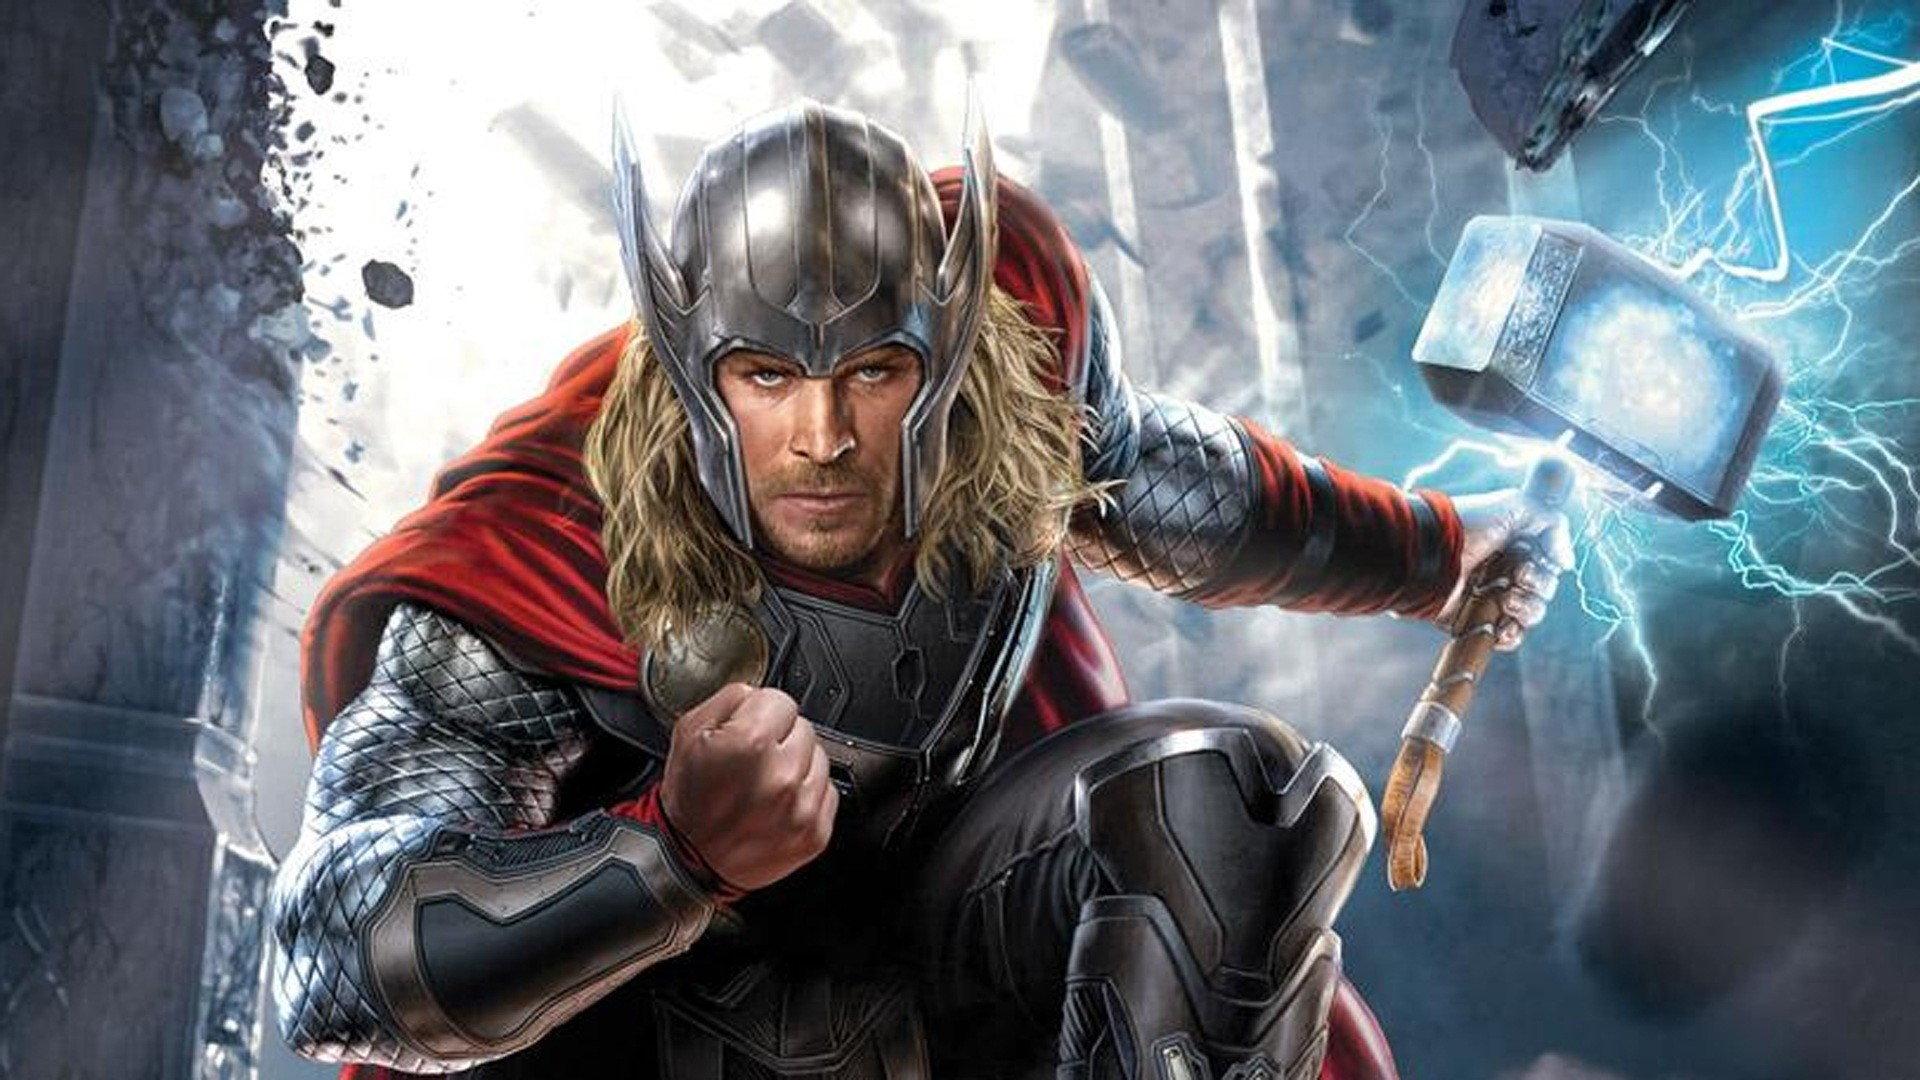 Thor Pictures Free Wallpaper: Thor Movie Wallpaper (81+ Images